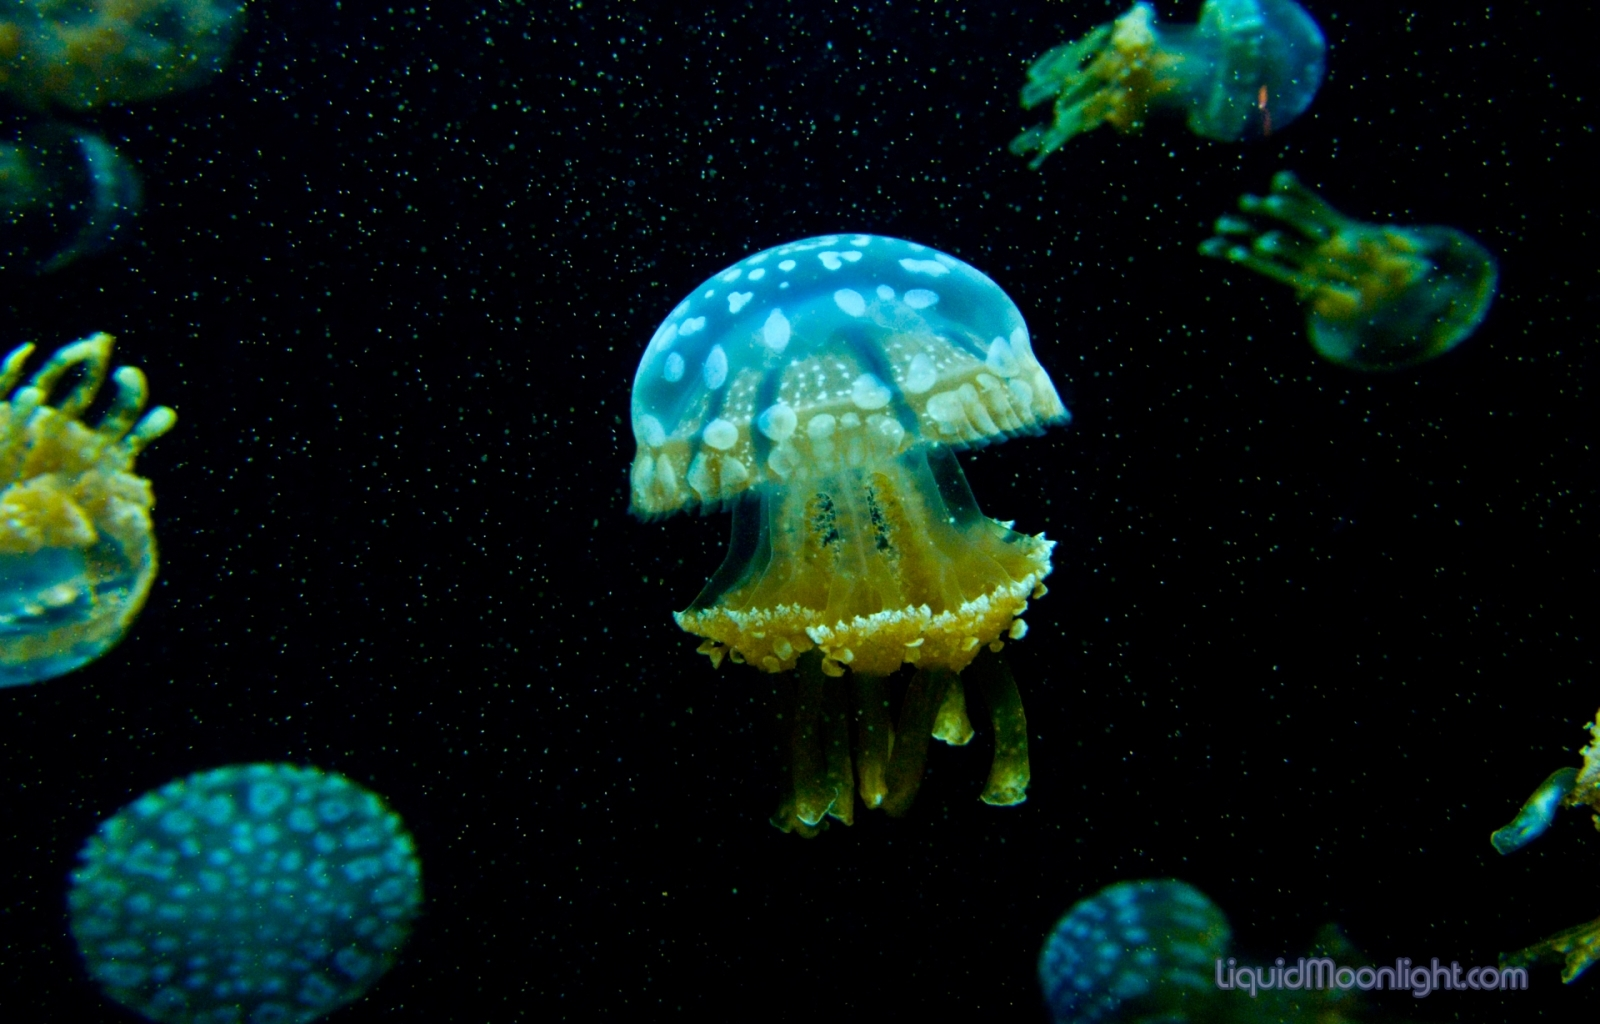 7842 download wallpaper Animals, Sea, Jellyfish screensavers and pictures for free